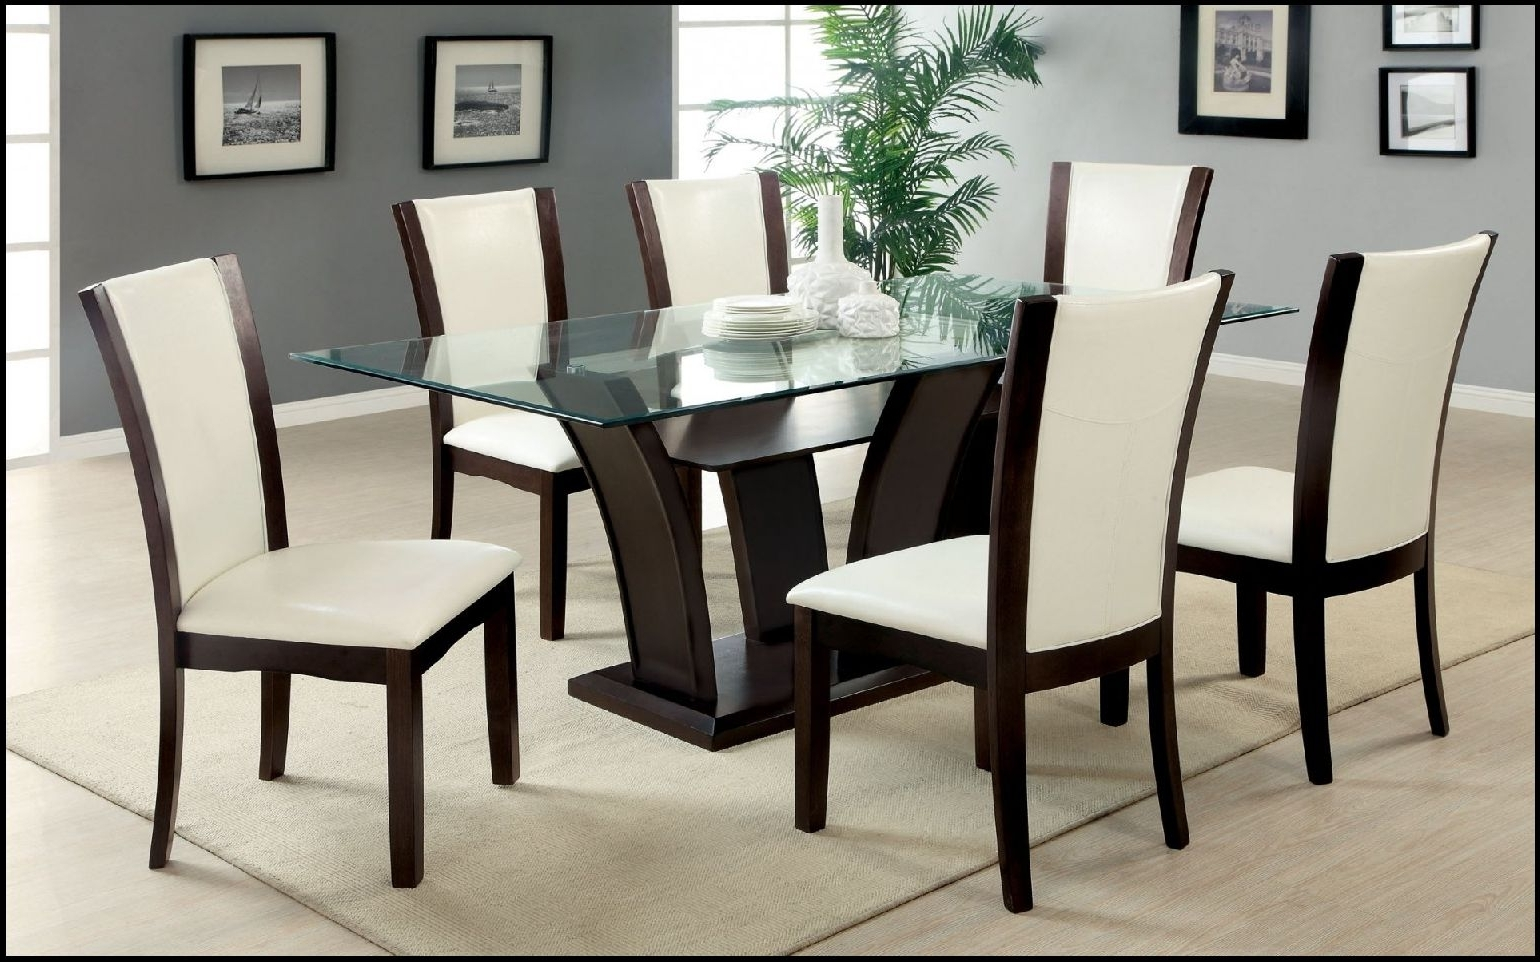 Newest Best 6 Chair Glass Dining Table Set With Folding Dining Table And 6 With 6 Chairs Dining Tables (View 18 of 25)